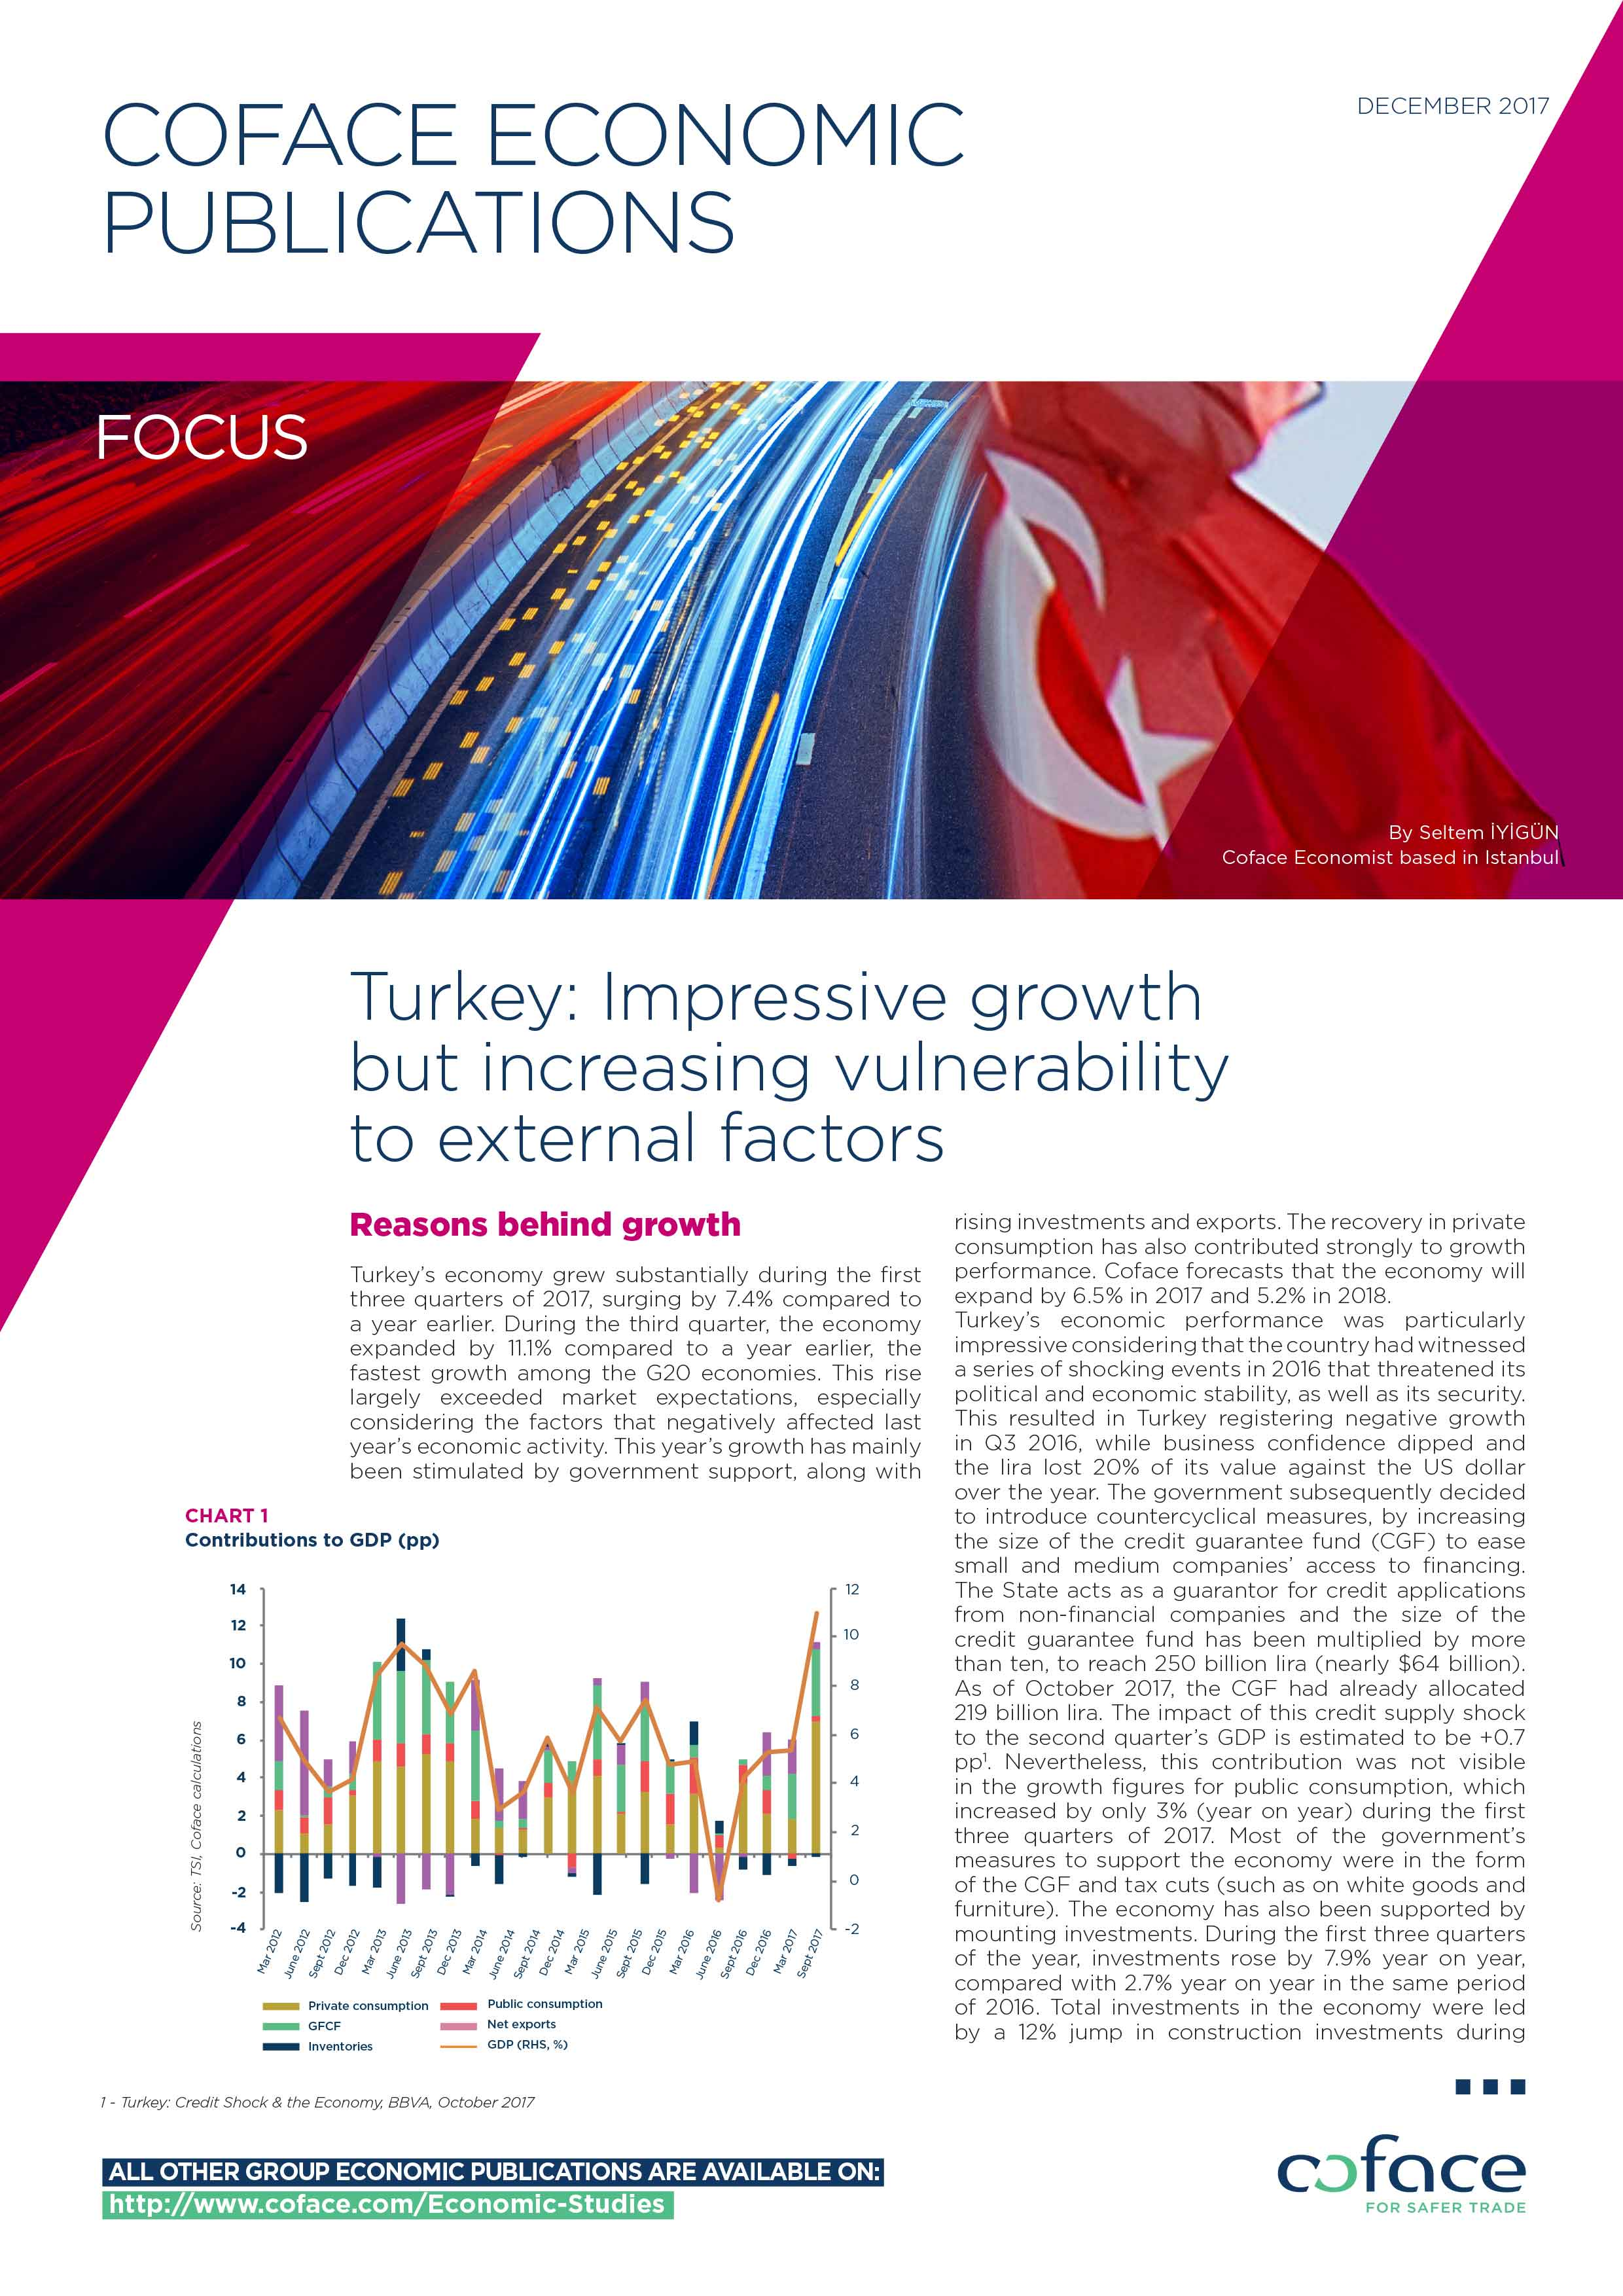 Turkey: Impressive growth but increasing vulnerability to external factors